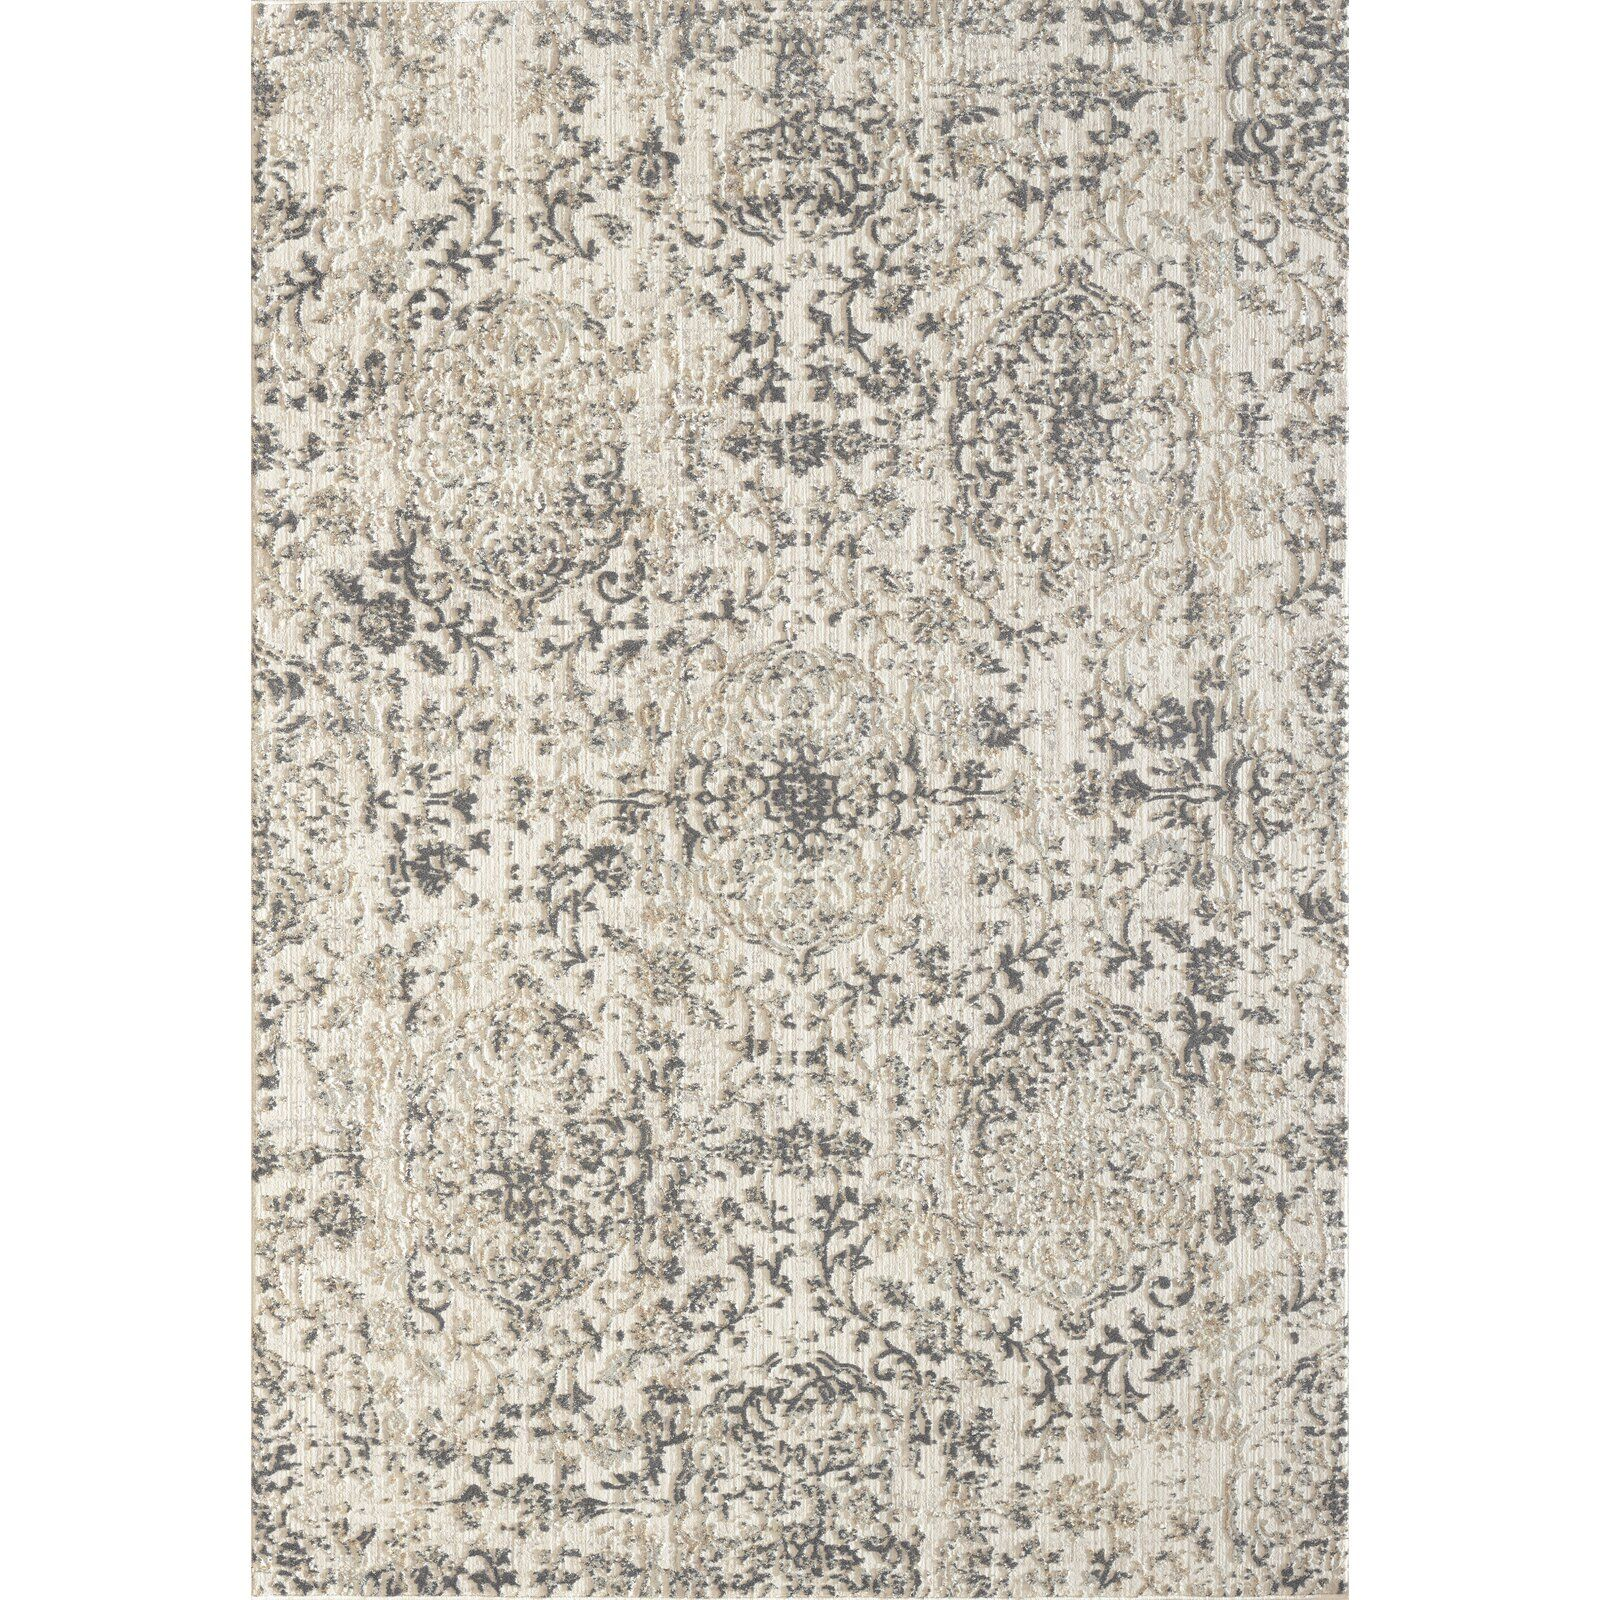 Bullis Floral Beige Area Rug In 2020 Dynamic Rugs Beige Area